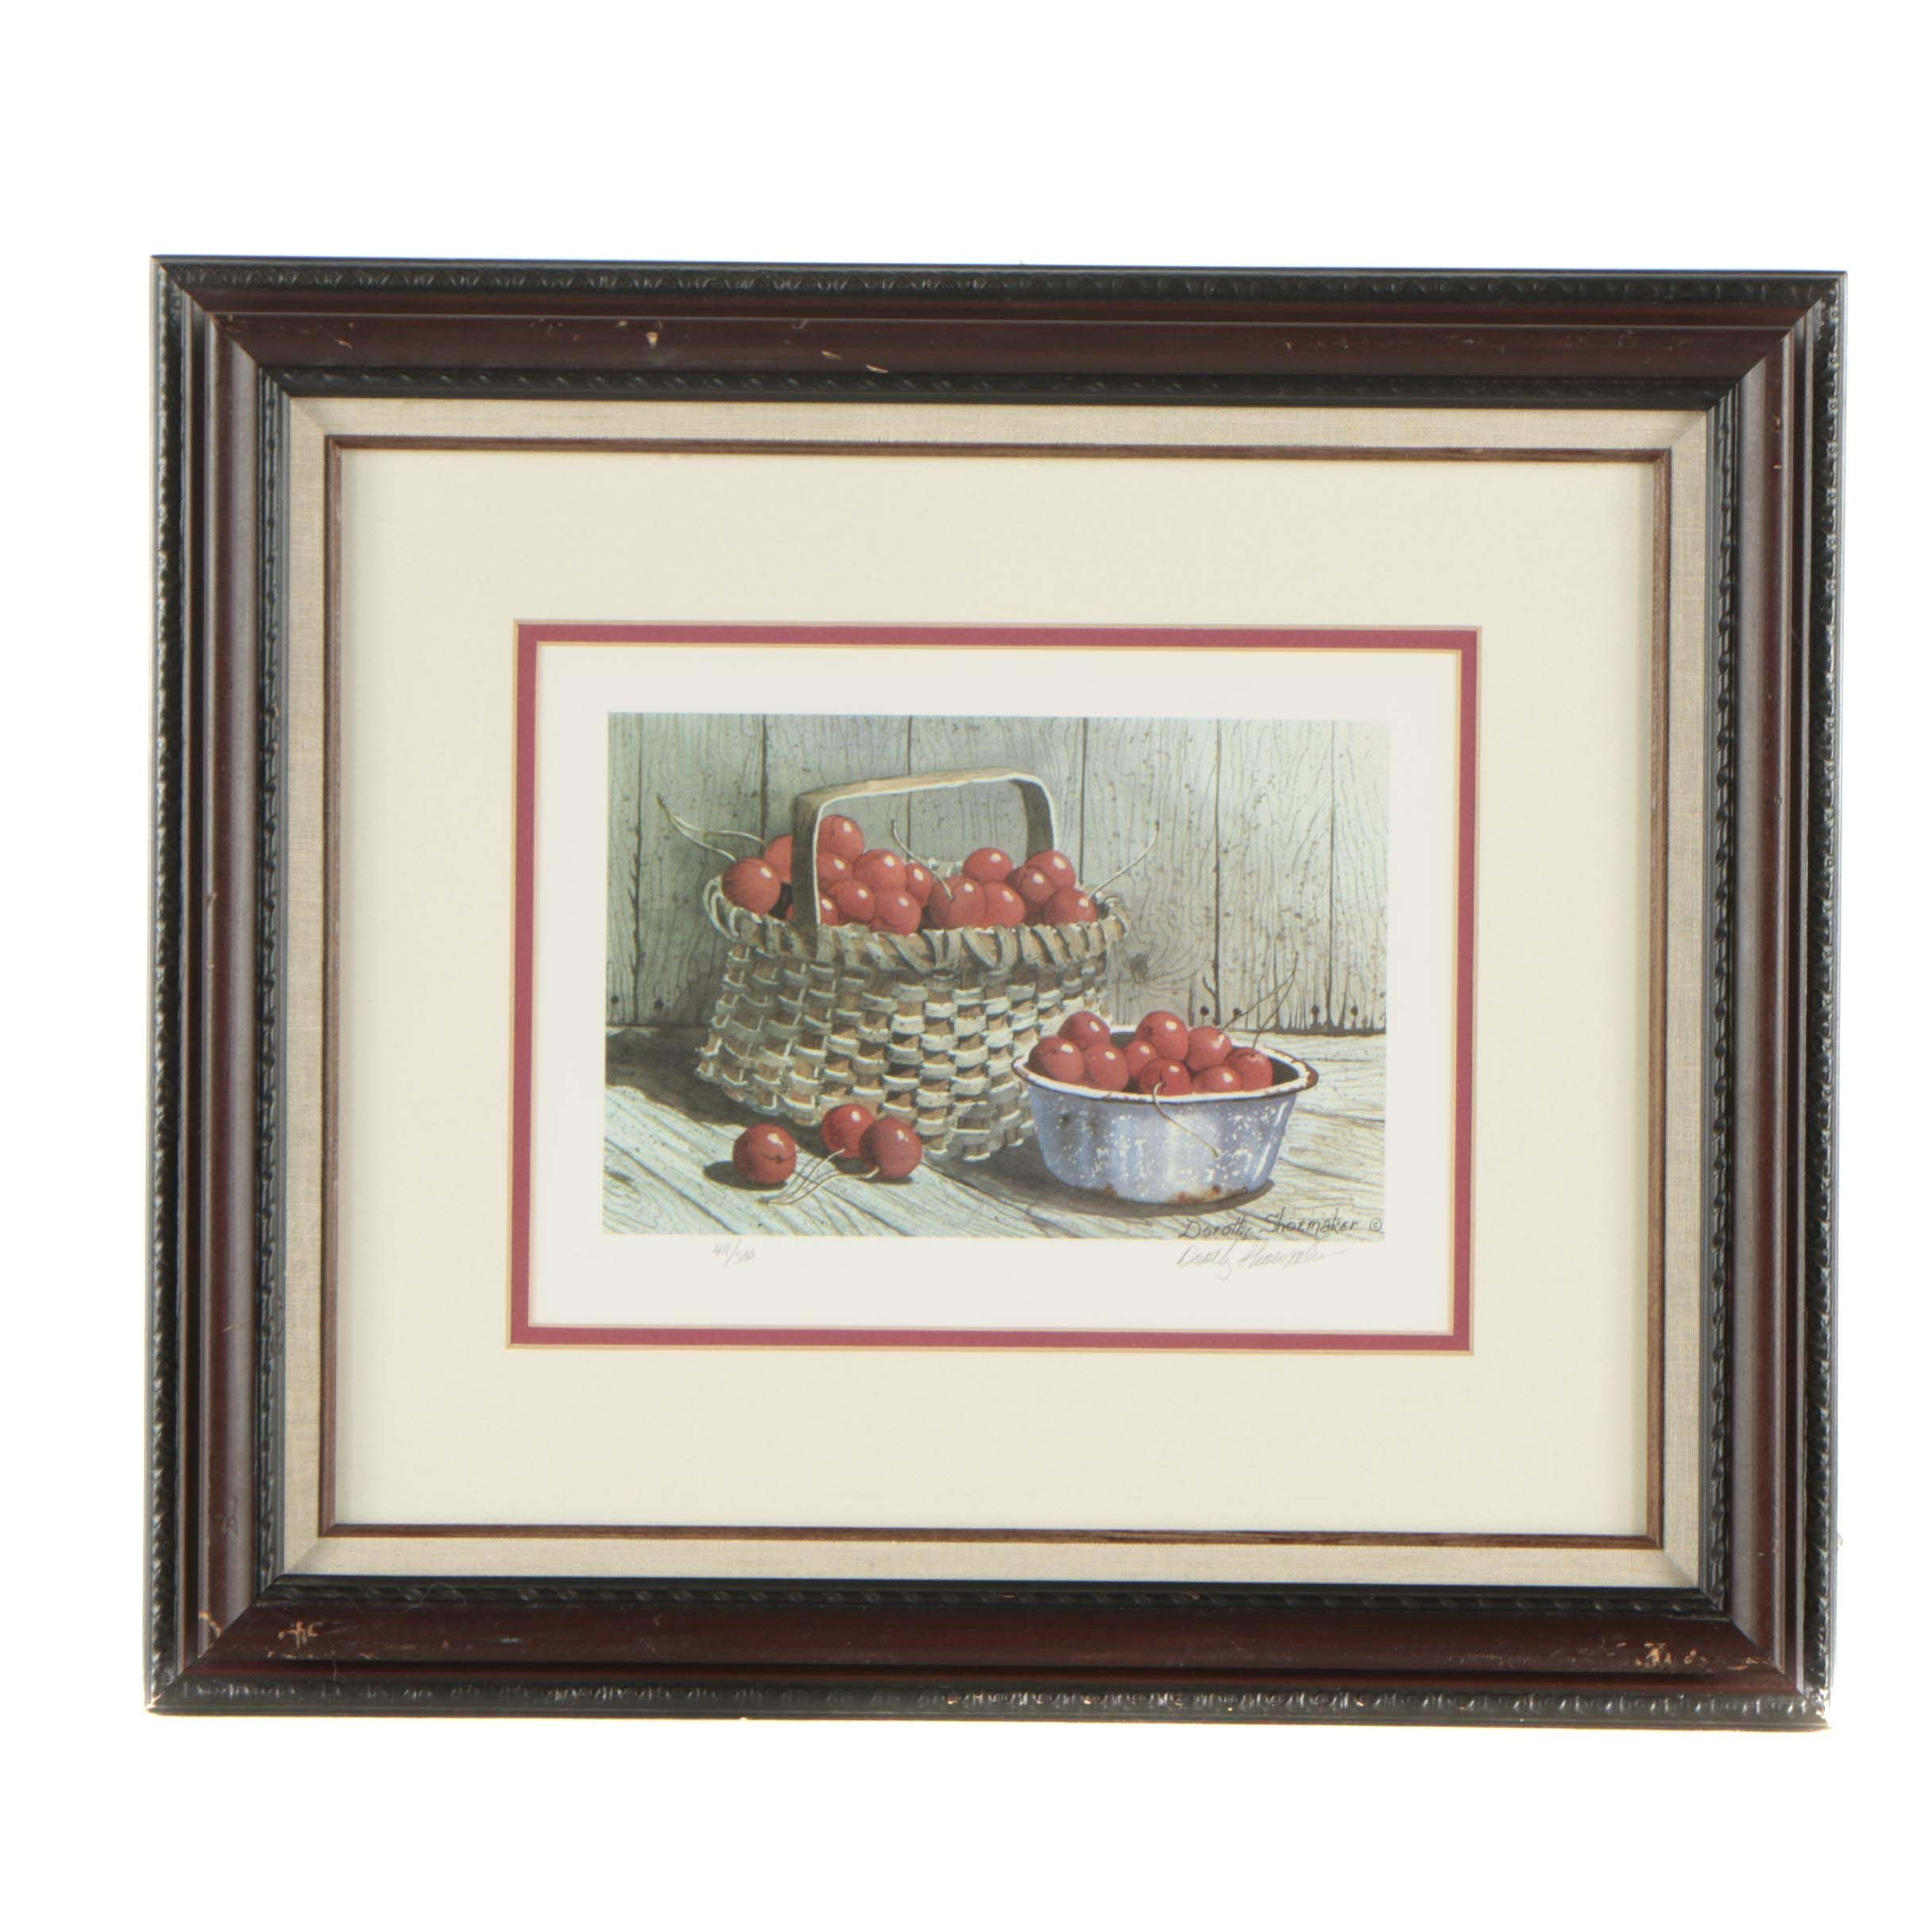 Dorothy Shoemaker Limited Edition Offset Lithograph of Cherries